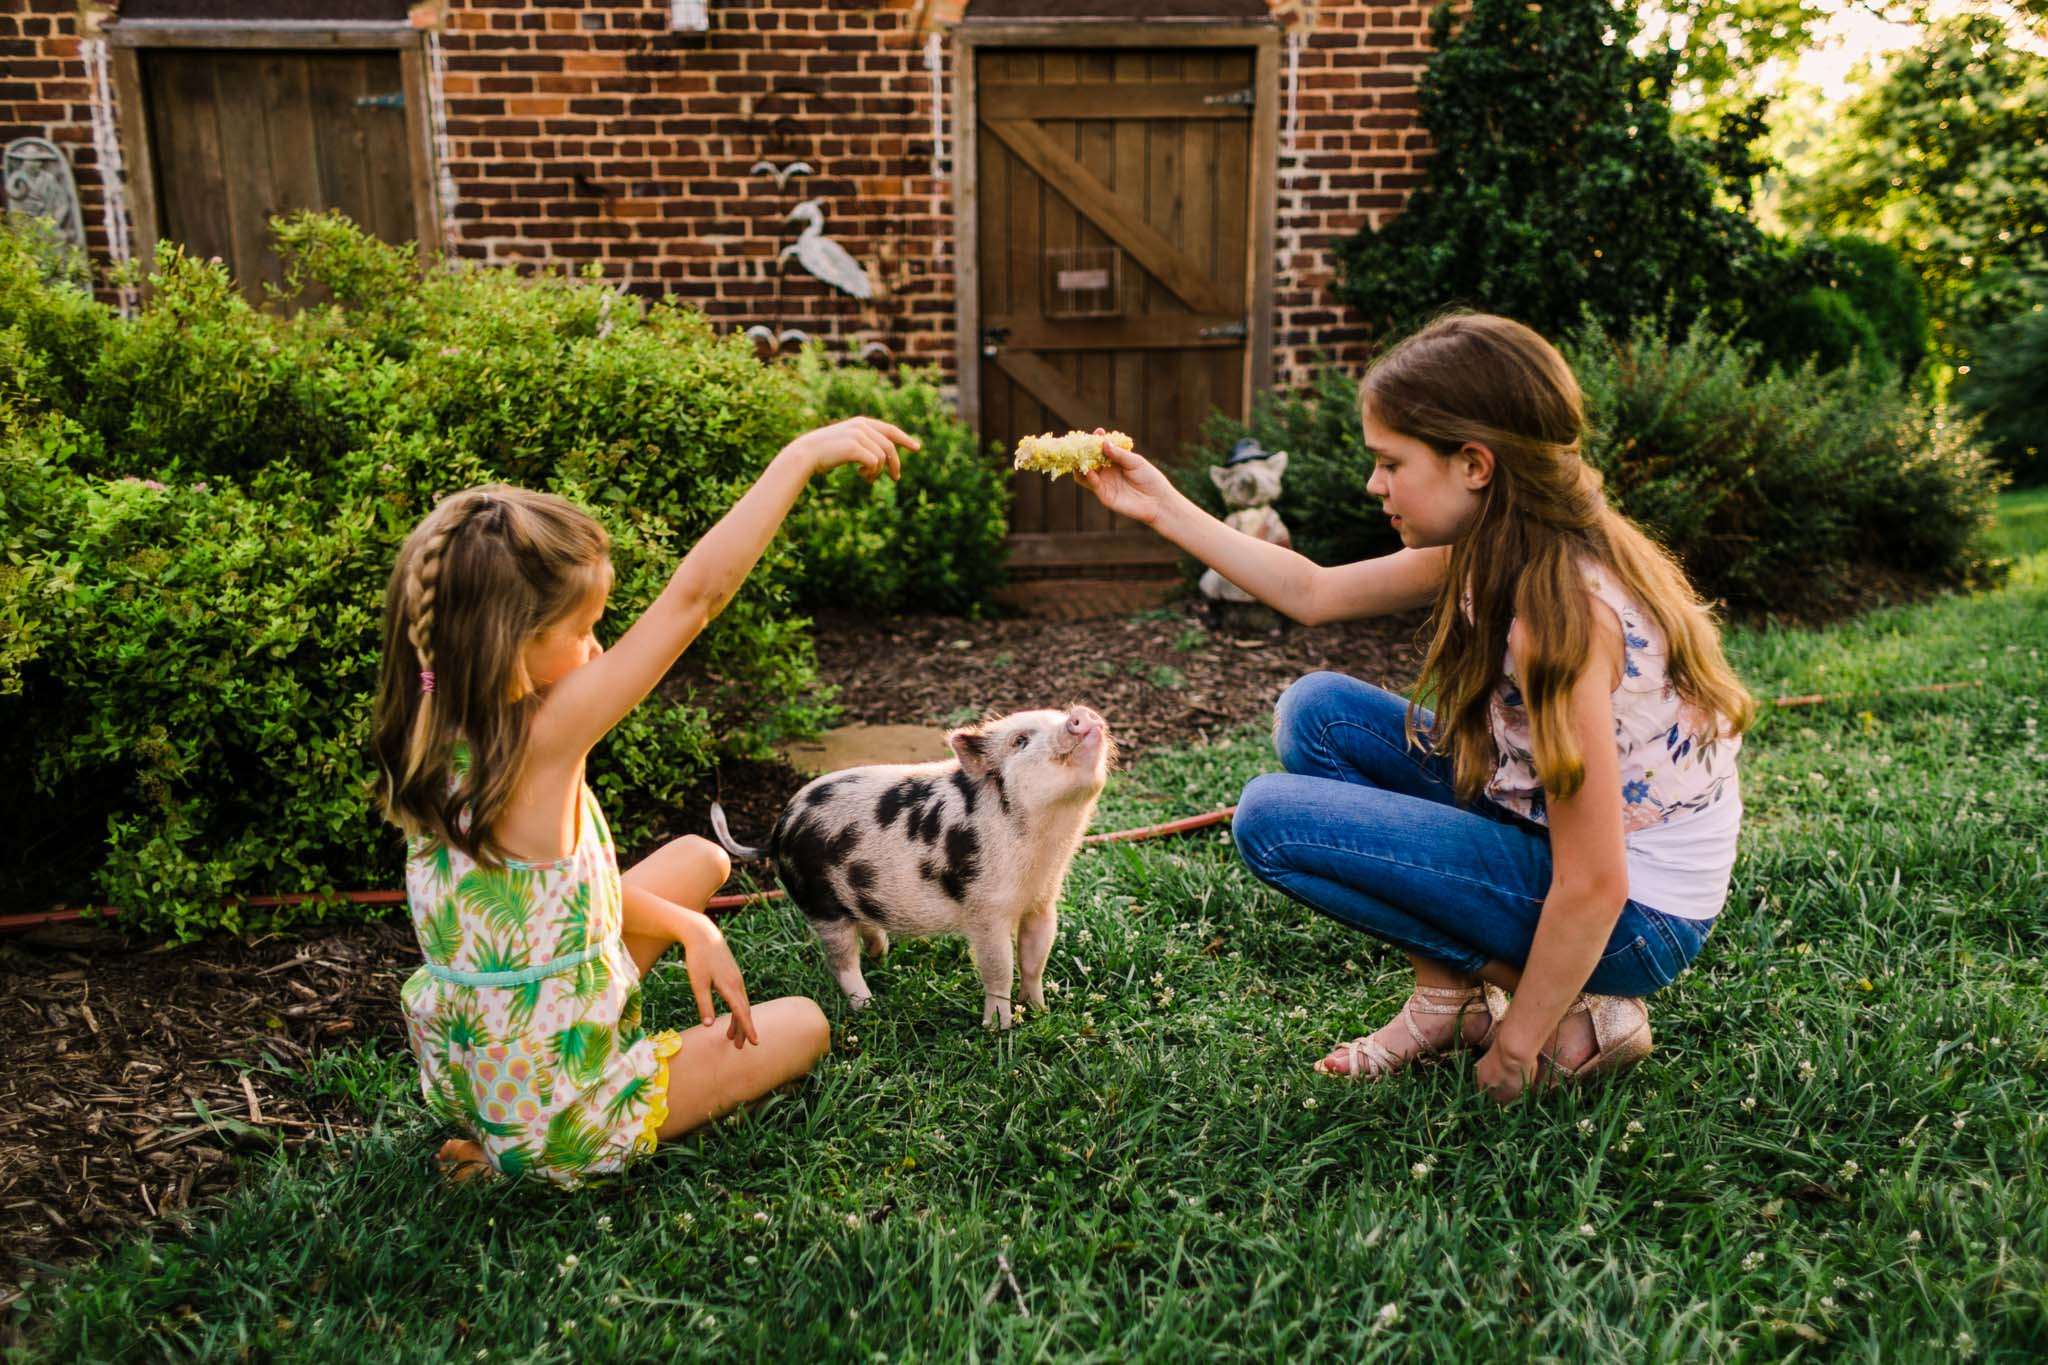 Durham Family Photographer | By G. Lin Photography | Girls playing with miniature pig